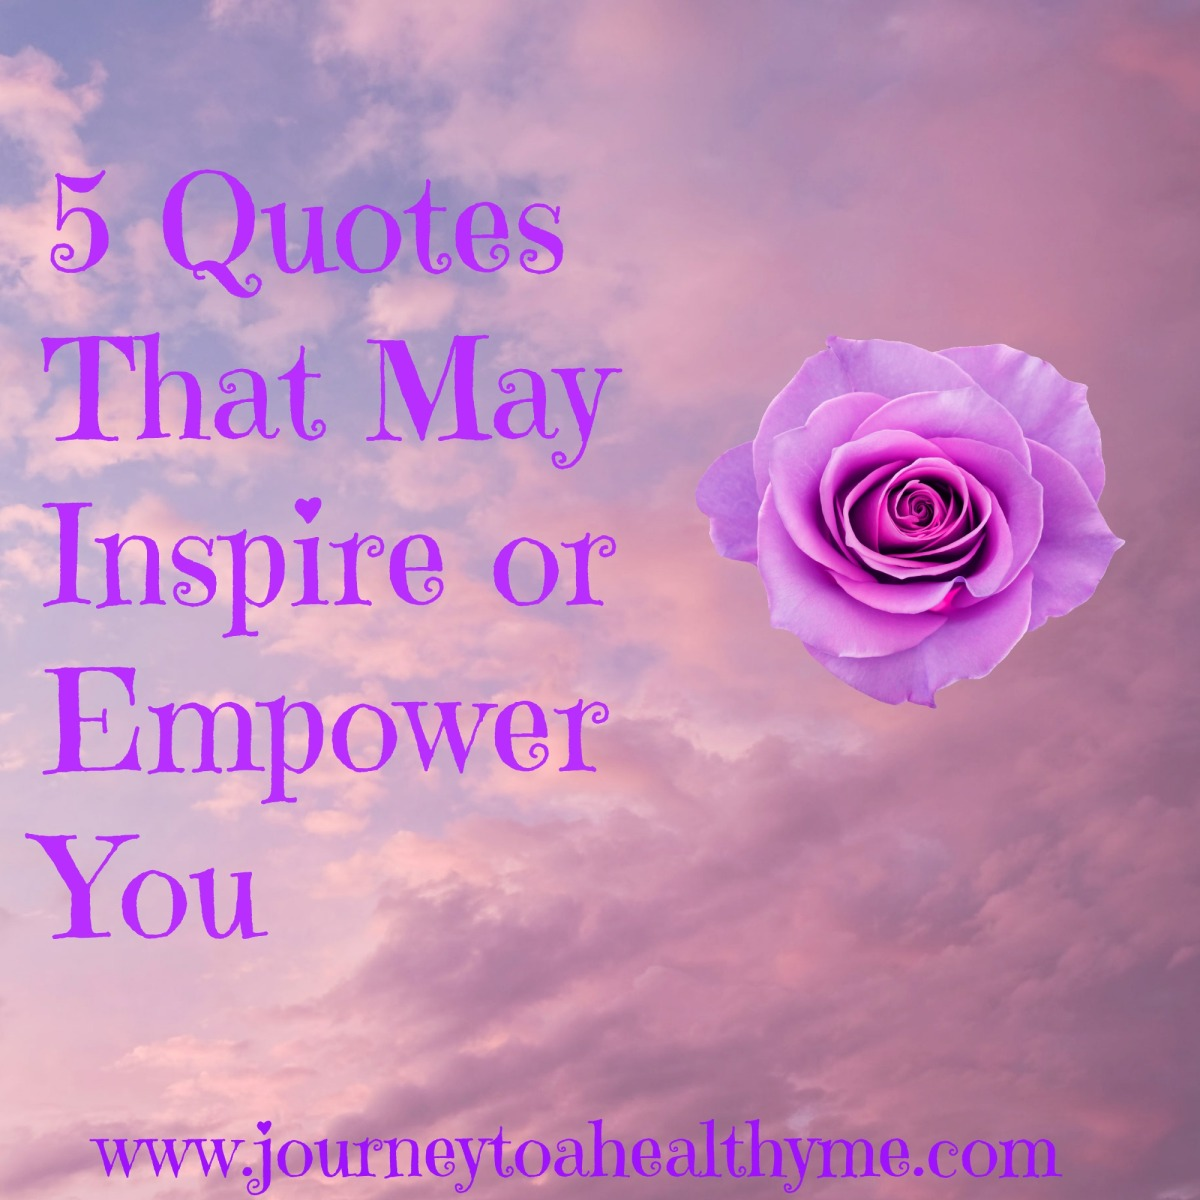 May Quotes For Inspiration: 5 Quotes That May Inspire And Empower You